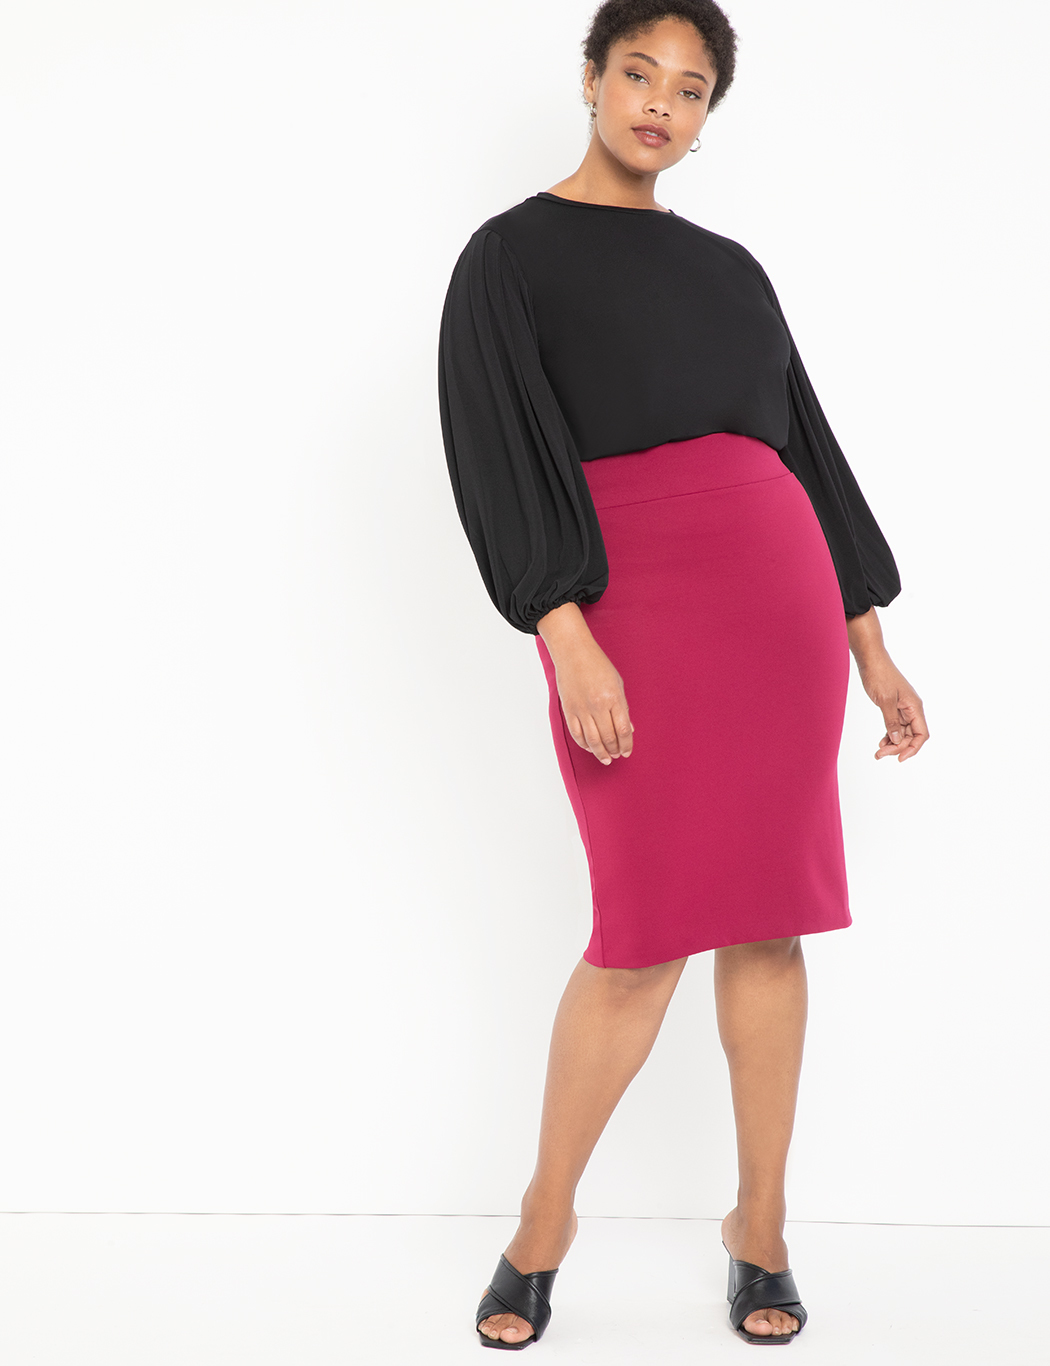 Neoprene Pencil Skirt 7